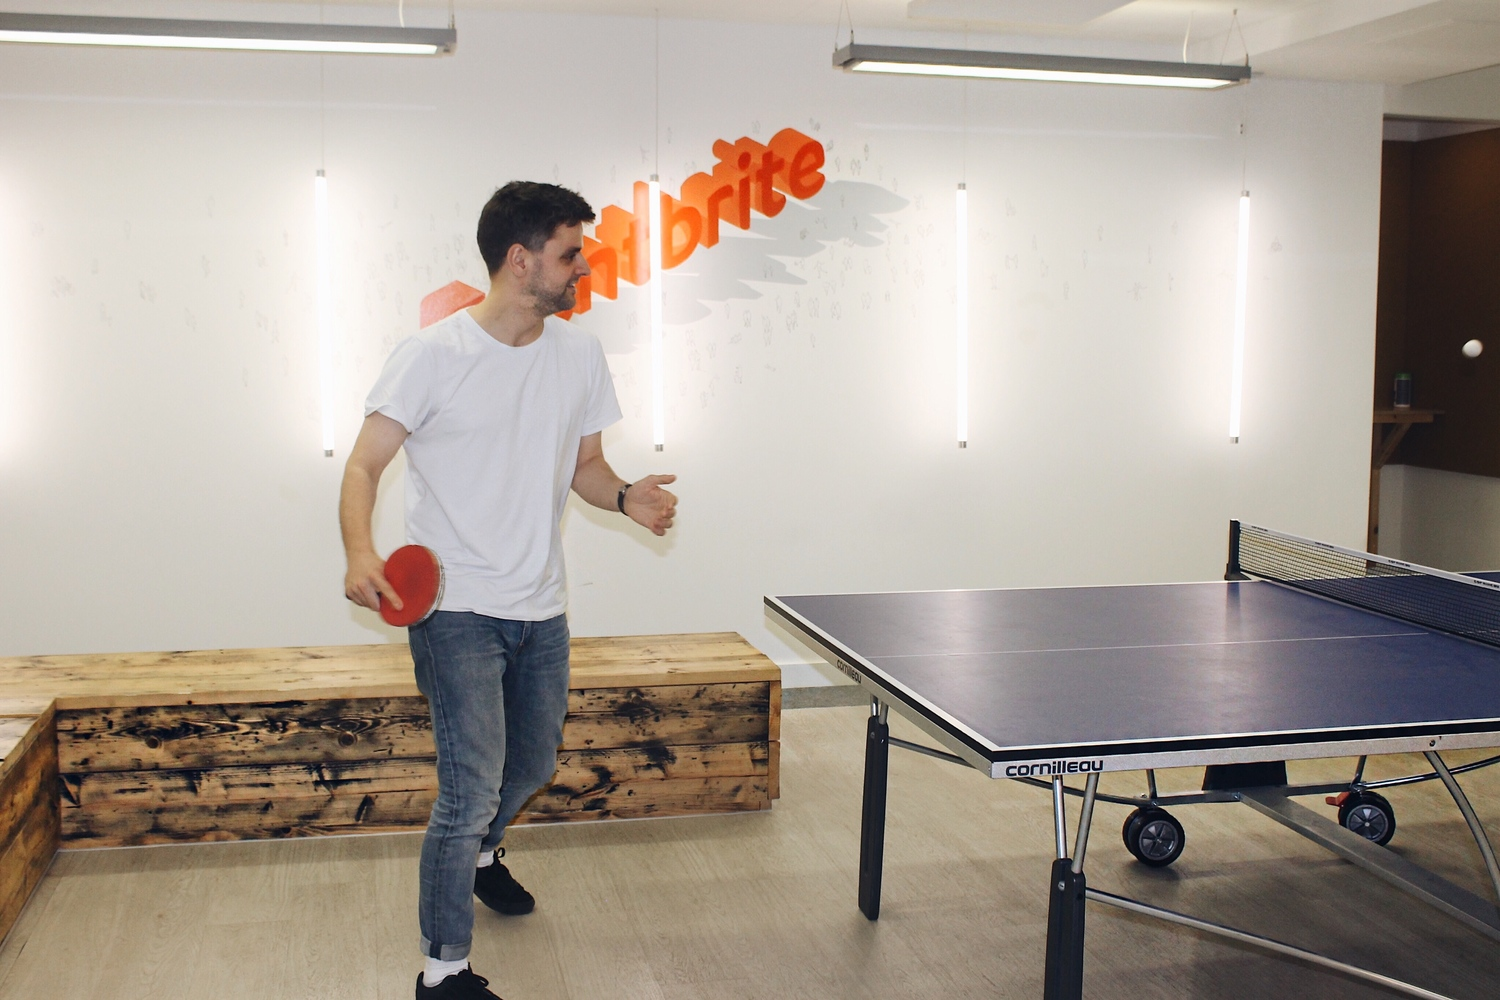 People, Person, Ping Pong, Sport, Sports, Dining Table, Furniture, Table, Clothing, Shoe, Wood, Plywood, Pants, Hardwood, Flooring, Jeans